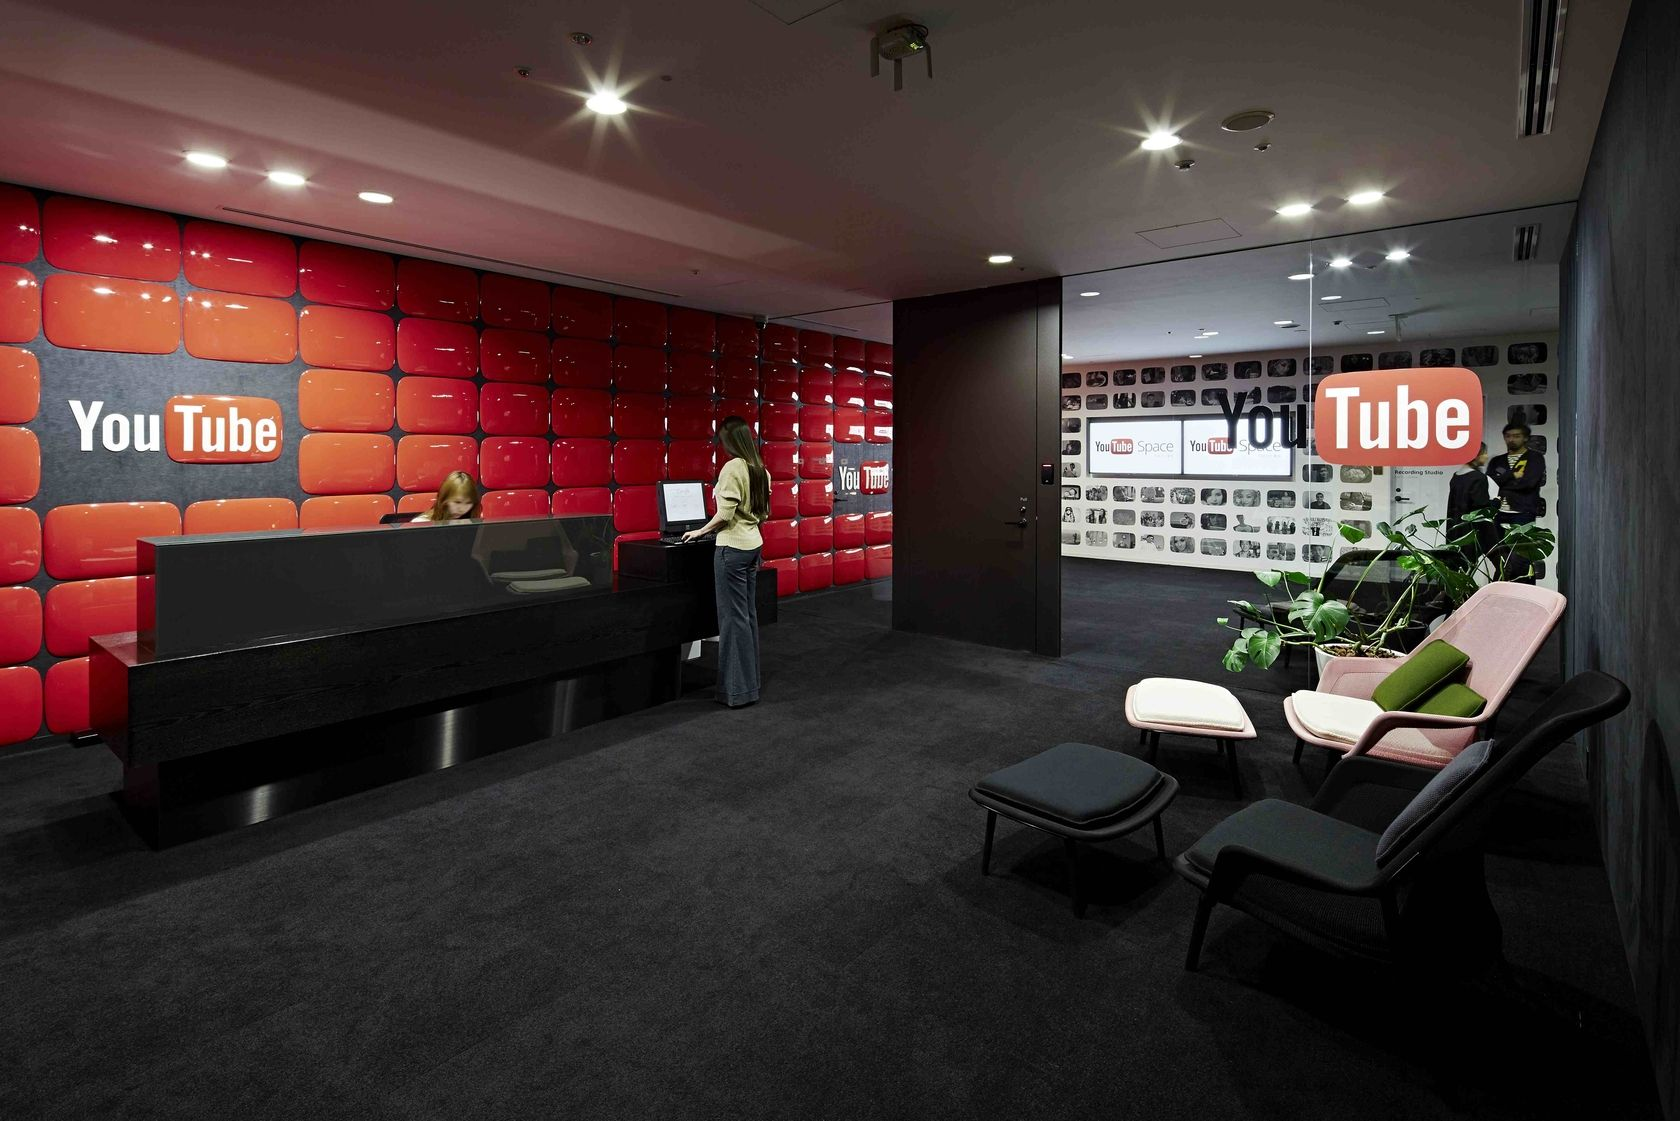 Image result for images of youtube california headquarters building